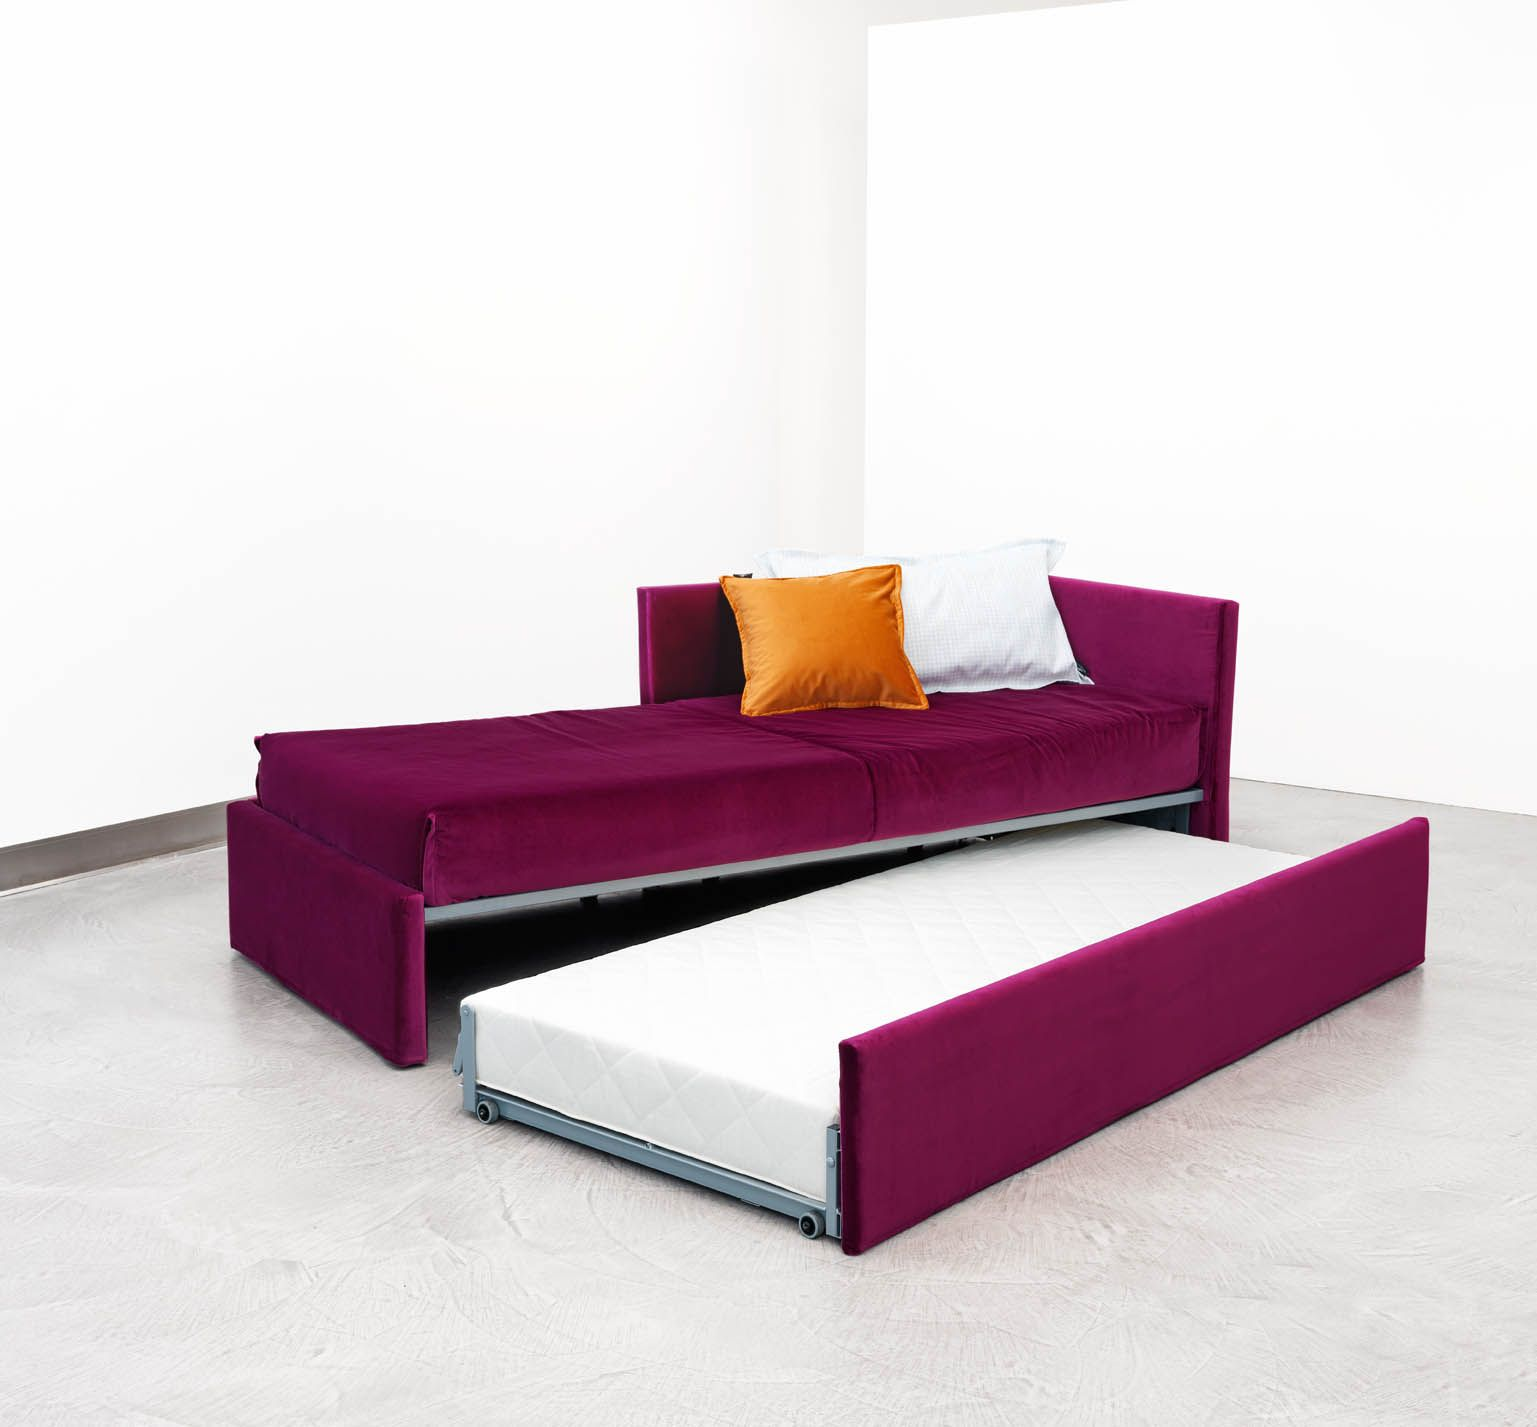 Design Giulio Manzoni For Orizzonti Italia The King Size Single From Single Bed To A Comfortable Bed For Two Functional Gabriel Duo Can Be An Insel